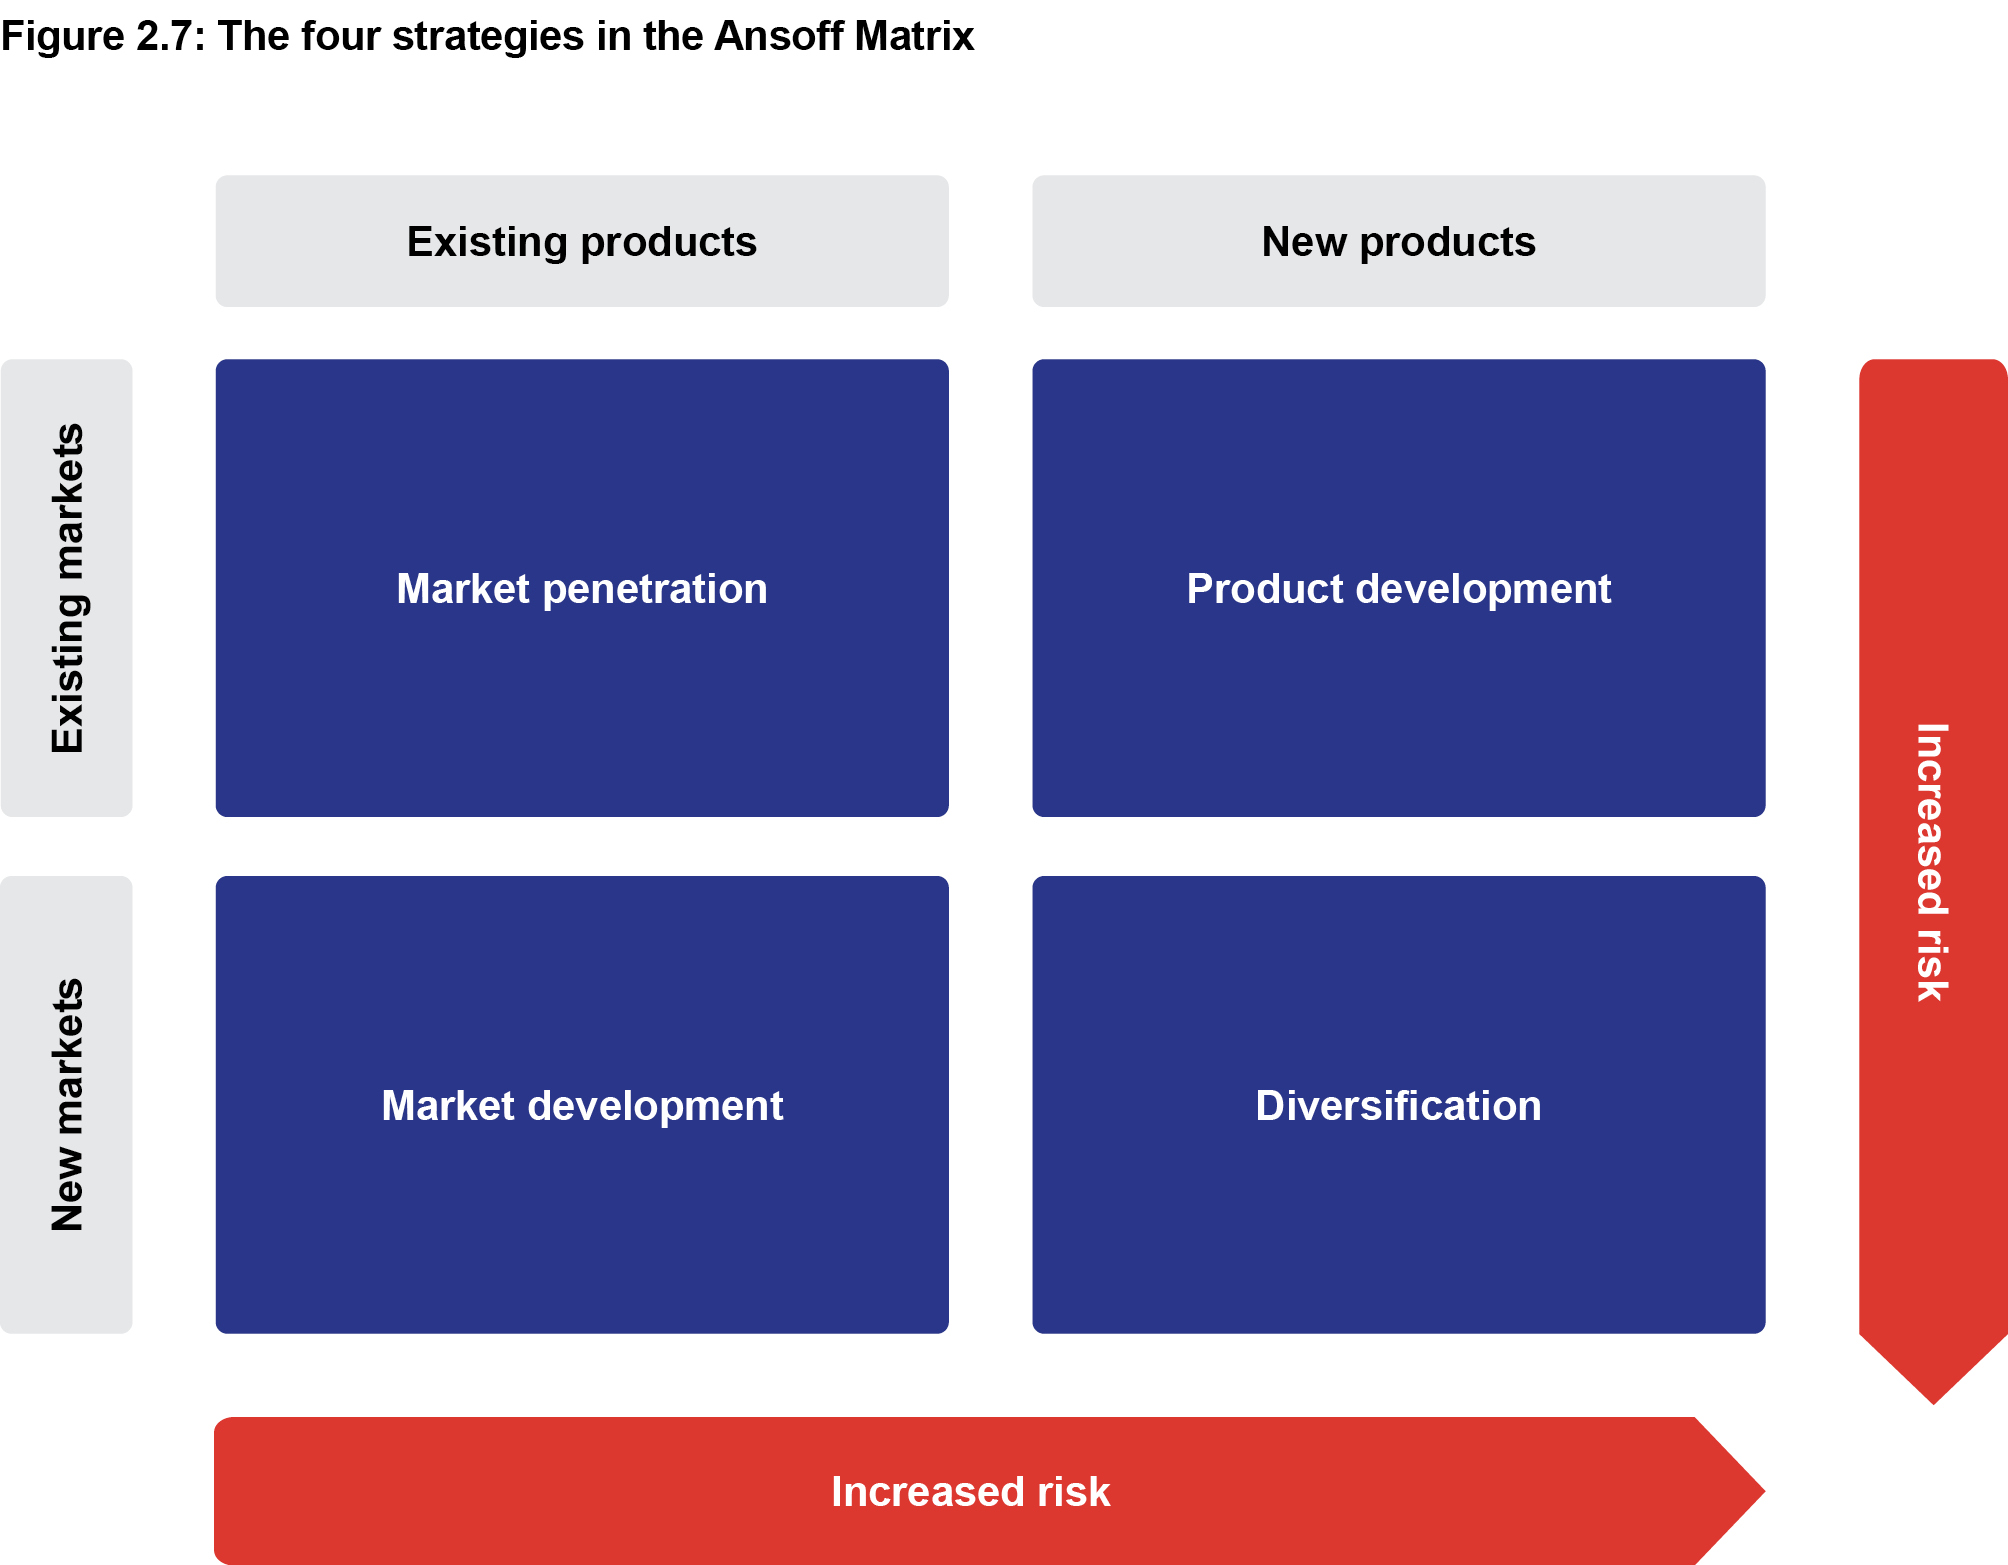 Figure 2.7: The four strategies in the Ansoff Matrix